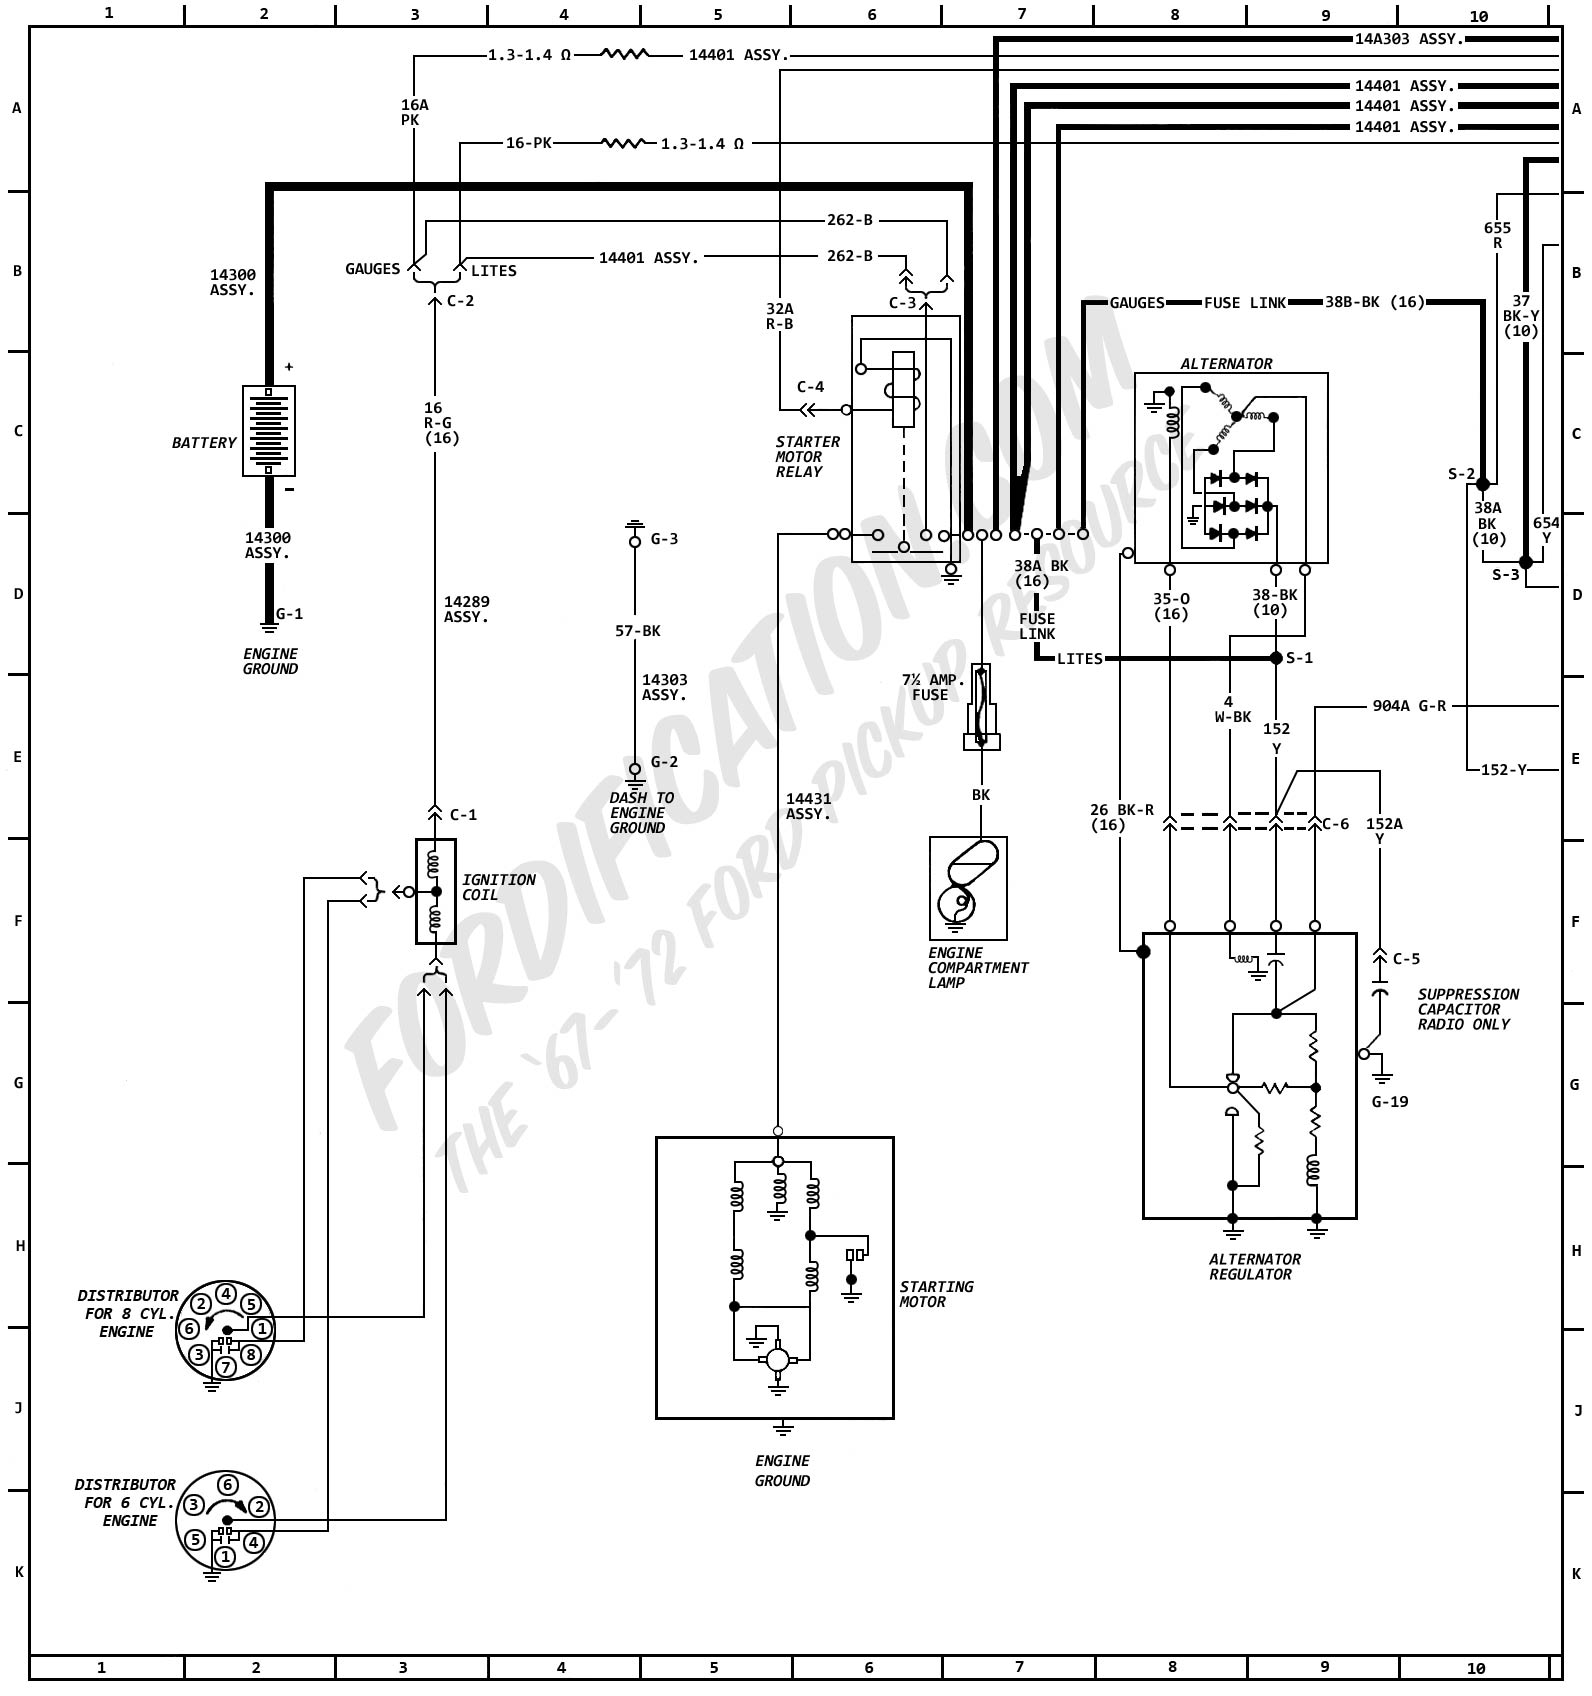 72 Ford Coil Wiring Diagram - Wiring Data  Chevy Truck Dome Light Wiring Diagram on 1940 chevy wiring diagram, 1949 chevy truck horn, 1950 chevy wiring diagram, 1949 chevy truck engine, 1949 chevy truck clutch, 1949 chevy truck coil, 1949 packard wiring diagram, chevy volt wiring diagram, 1949 chevy truck accessories, 1948 ford wiring diagram, 1949 cadillac wiring diagram, 1949 chevy truck forum, 54 chevy wiring diagram, 1949 chevy truck steering, 1949 chevy truck voltage regulator, 1949 plymouth wiring diagram, 1953 chevy wiring diagram, 1940 ford pickup wiring diagram, 1949 ford wiring diagram, chevy radio wiring diagram,